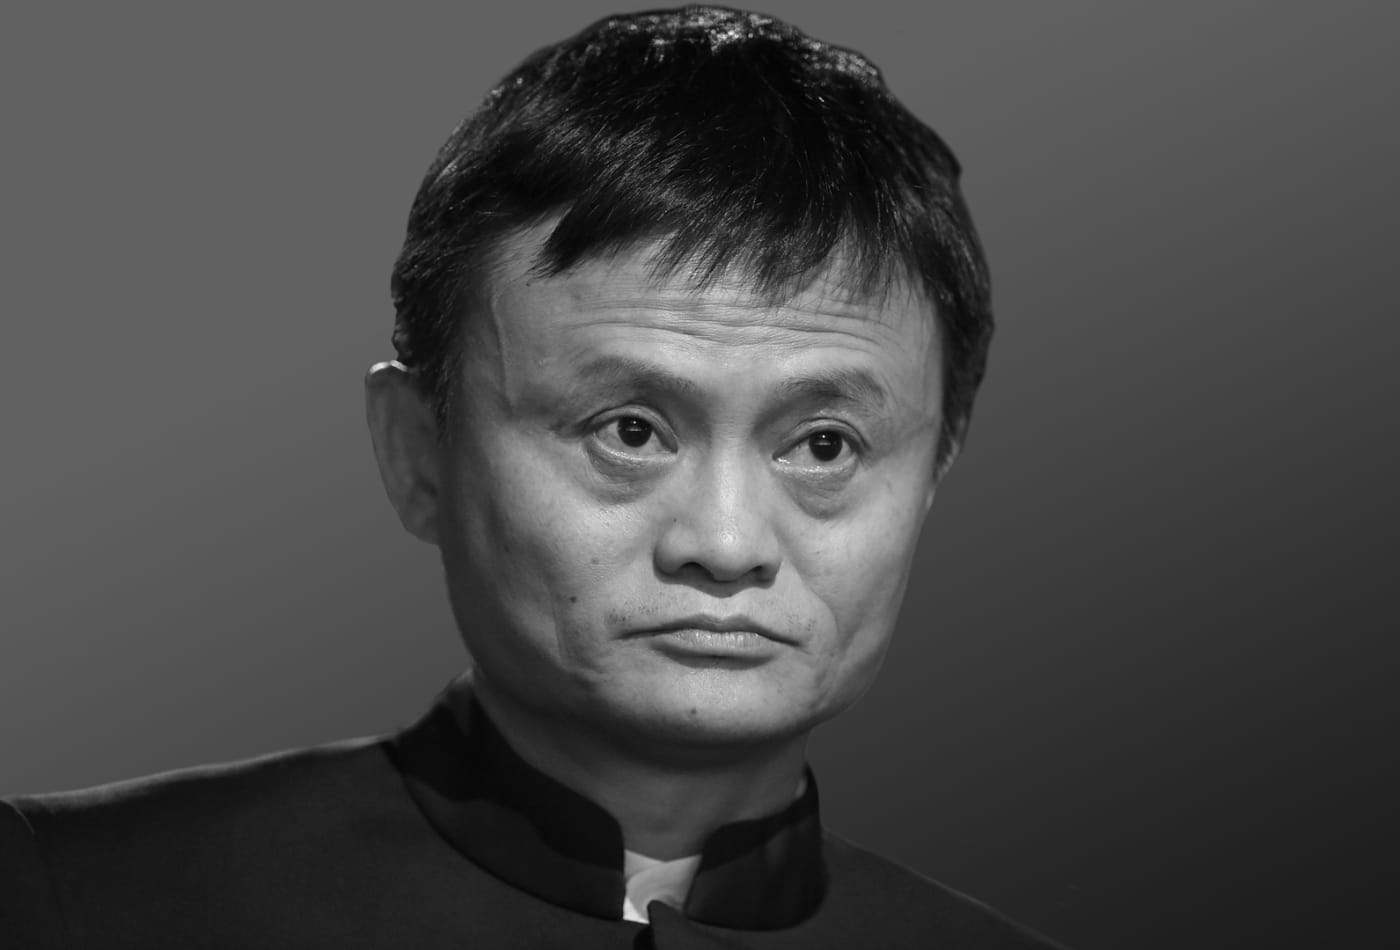 cee95b206 Alibaba's Jack Ma on e-commerce in China, globalization and Trump